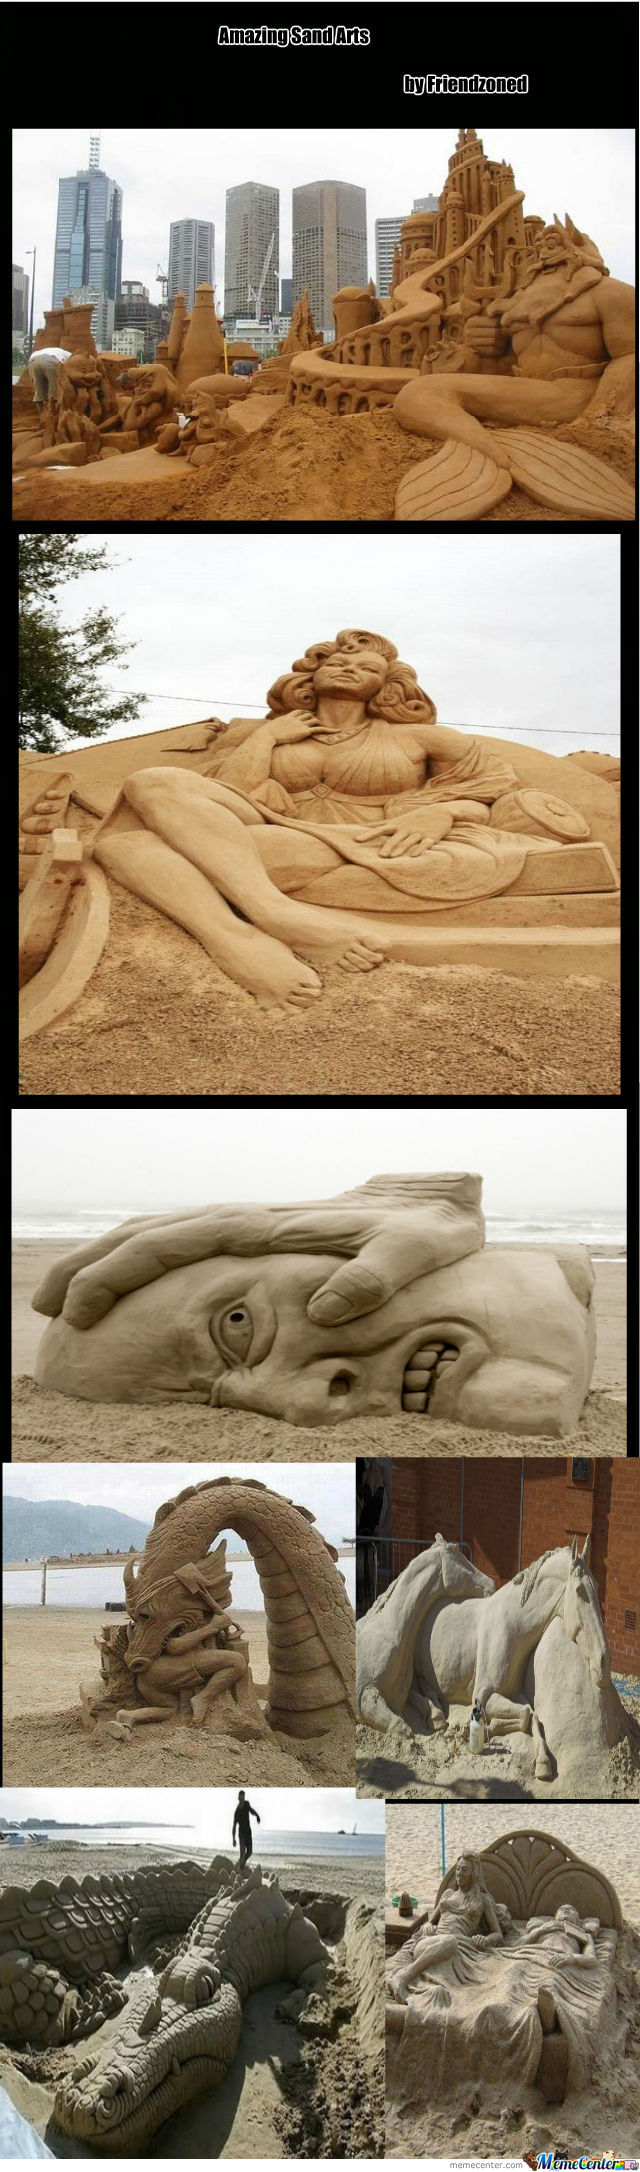 Amazing Sand Arts Part 1